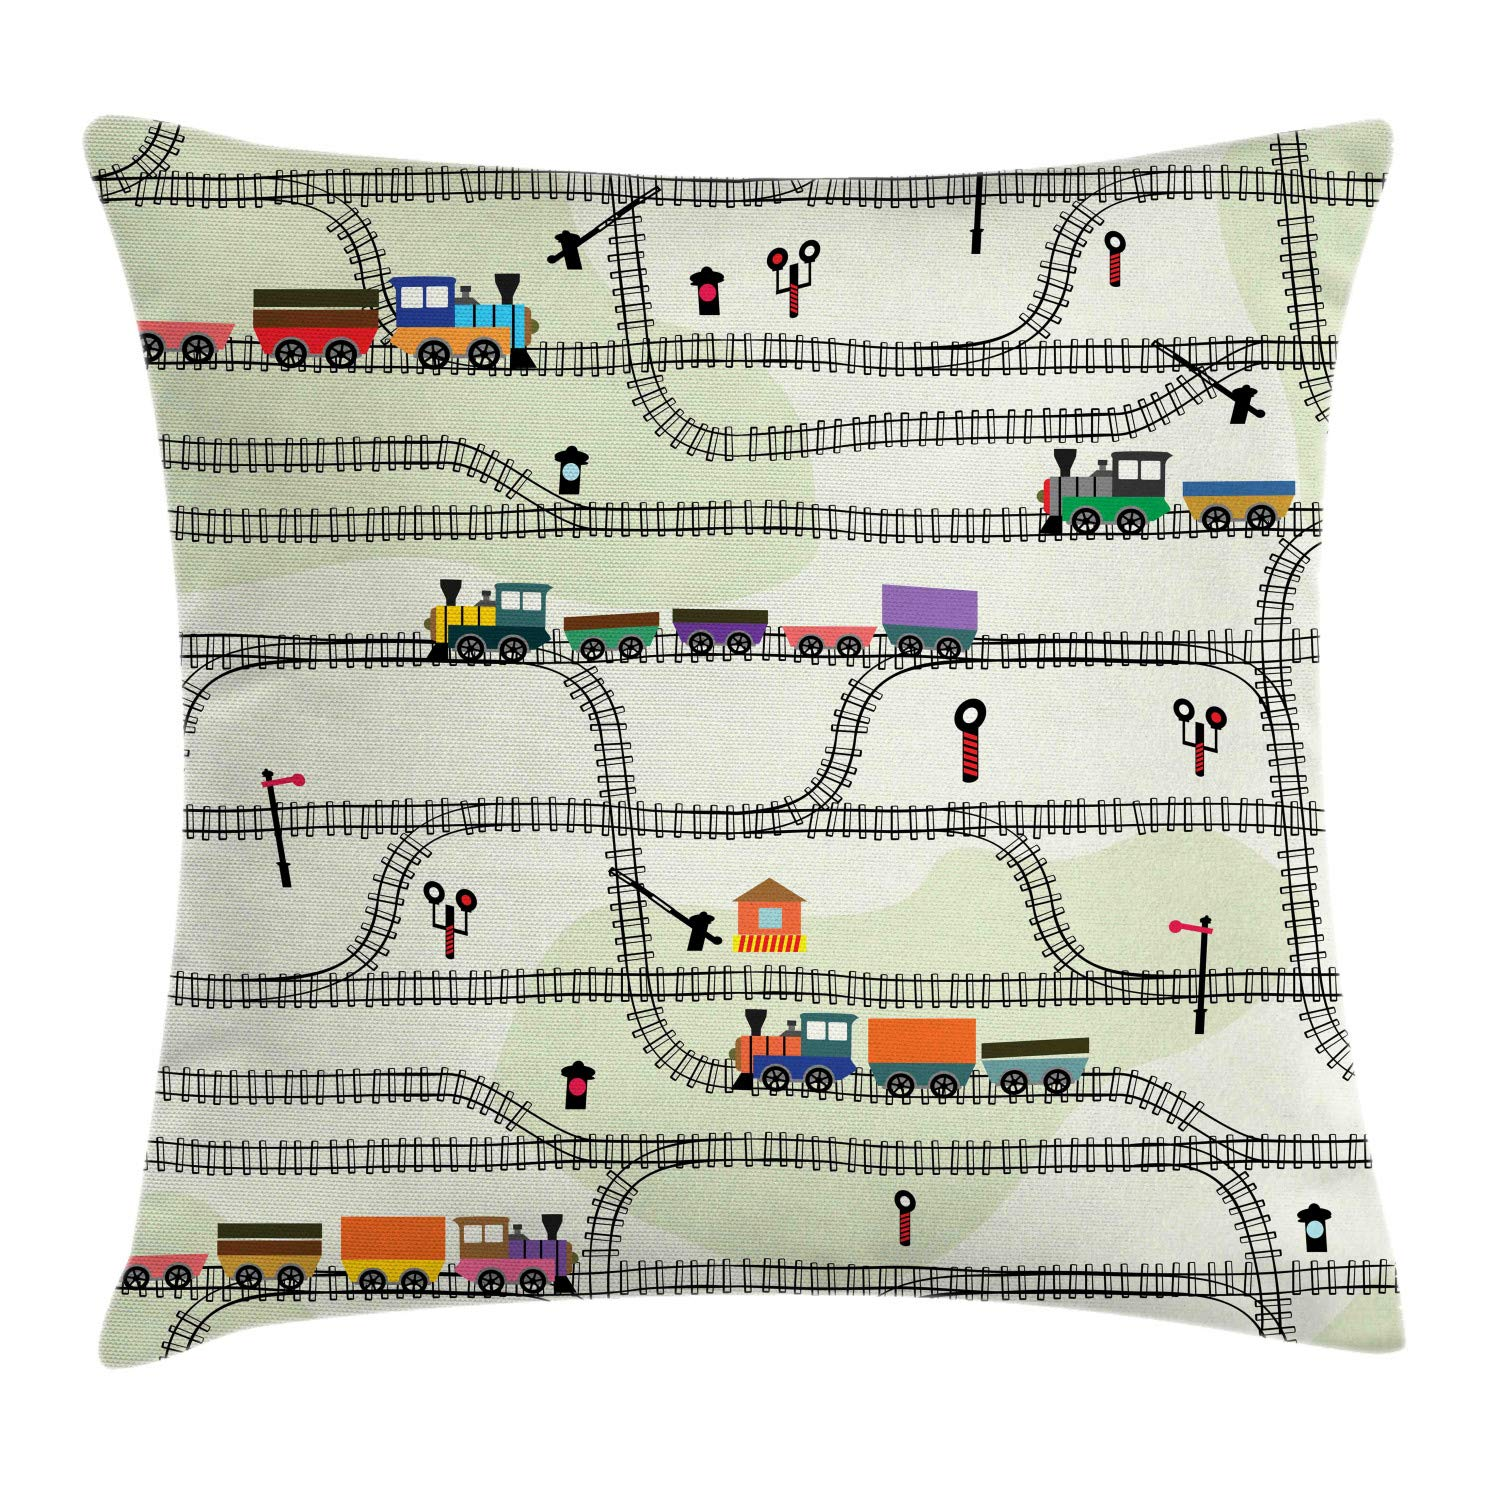 Ambesonne Railroad Throw Pillow Cushion Cover, Nursery Style Arrangement of Roads and Trains Locomotives Cartoon Kids Pattern, Decorative Square Accent Pillow Case, 36'' X 36'', Multicolor